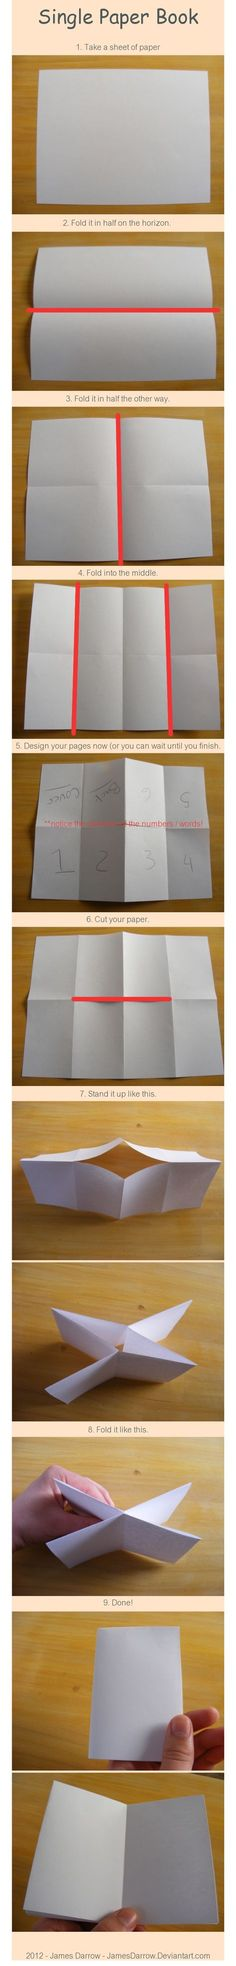 "Make a book with a single piece of paper. Used to make lots of these in KS1 ("",)"